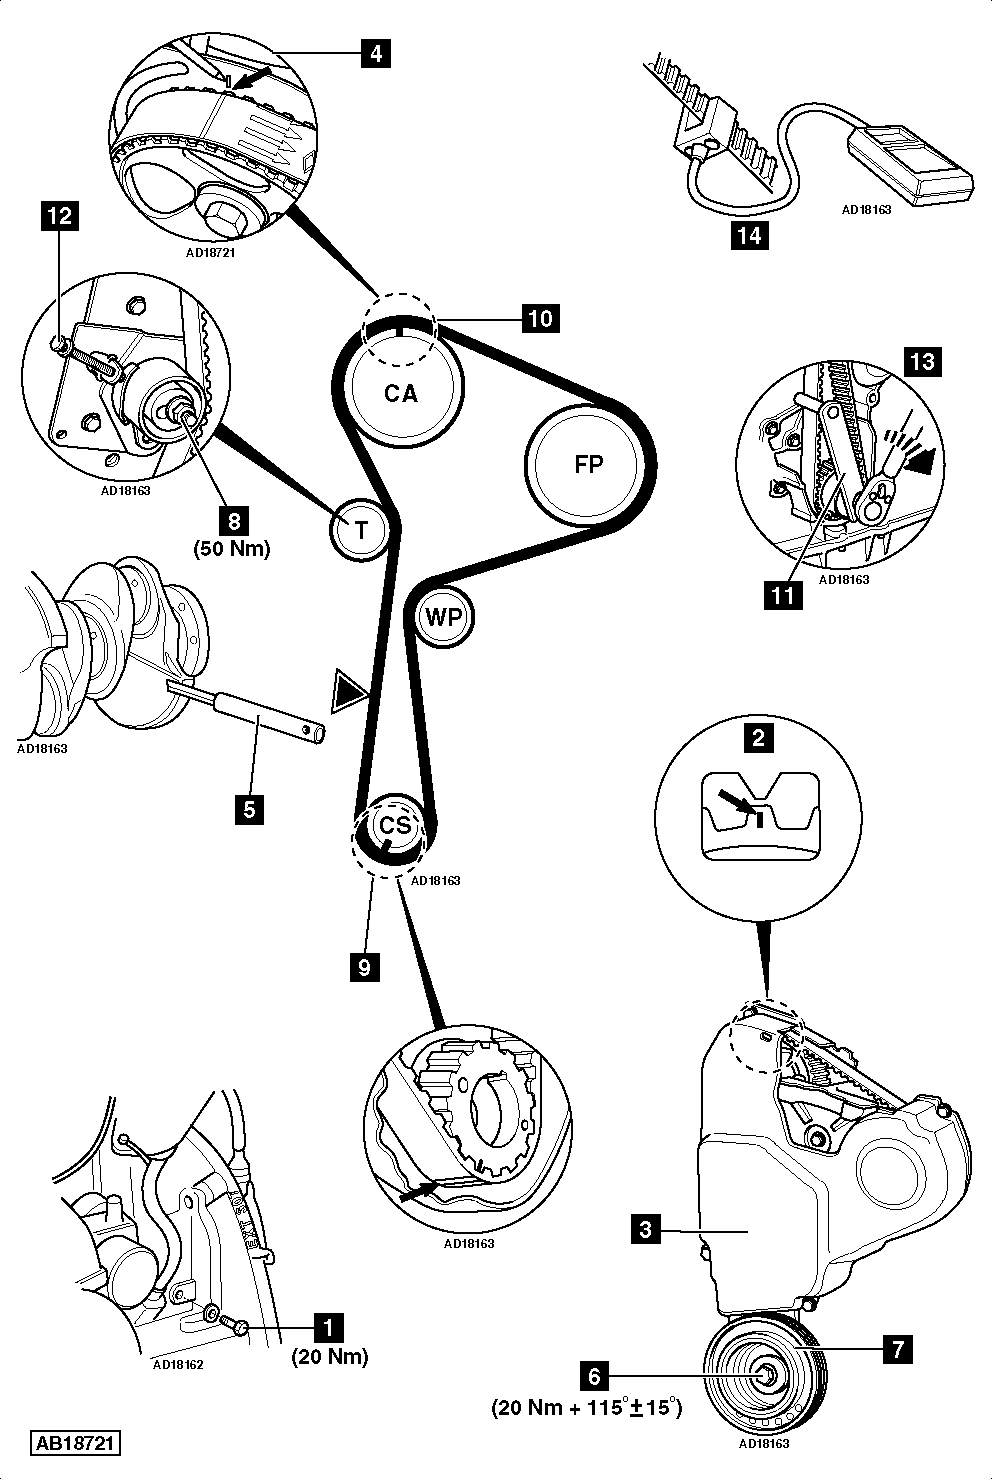 renault wiring diagram with How To Replace Timing Belt Vauxhallopel Movano A 1 9 Dti on 1992 Audi 80 Electrical Diagram furthermore T Max Dual Battery System Wiring Diagram as well Freelander Horn Wiring Diagram further 2004 Buick Lesabre Fuse Box Location as well 1911 Parts Diagram List.